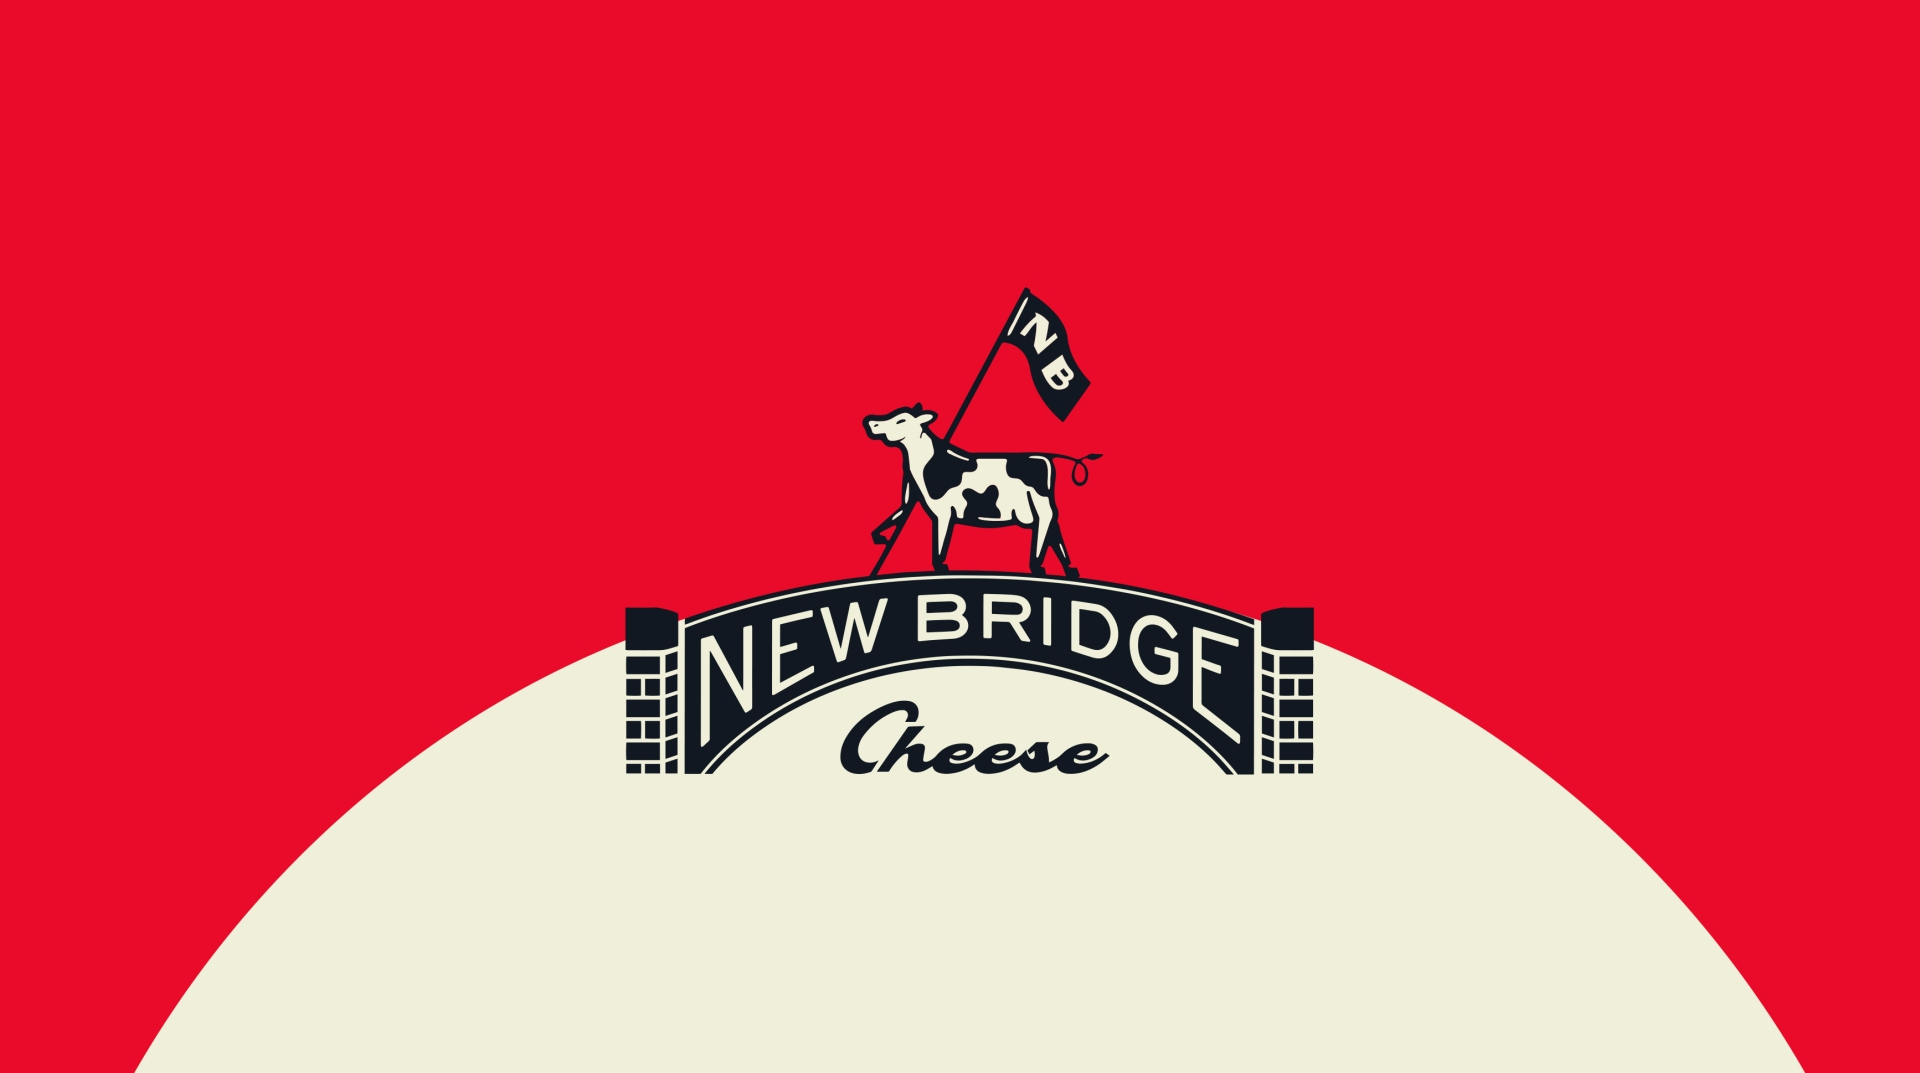 cow-proud-color-blocking-logo-new-bridge-cheese-design-exploration-zeki-michael-design-cheese-cow-spread-tub-sku-range-agency-branding copy